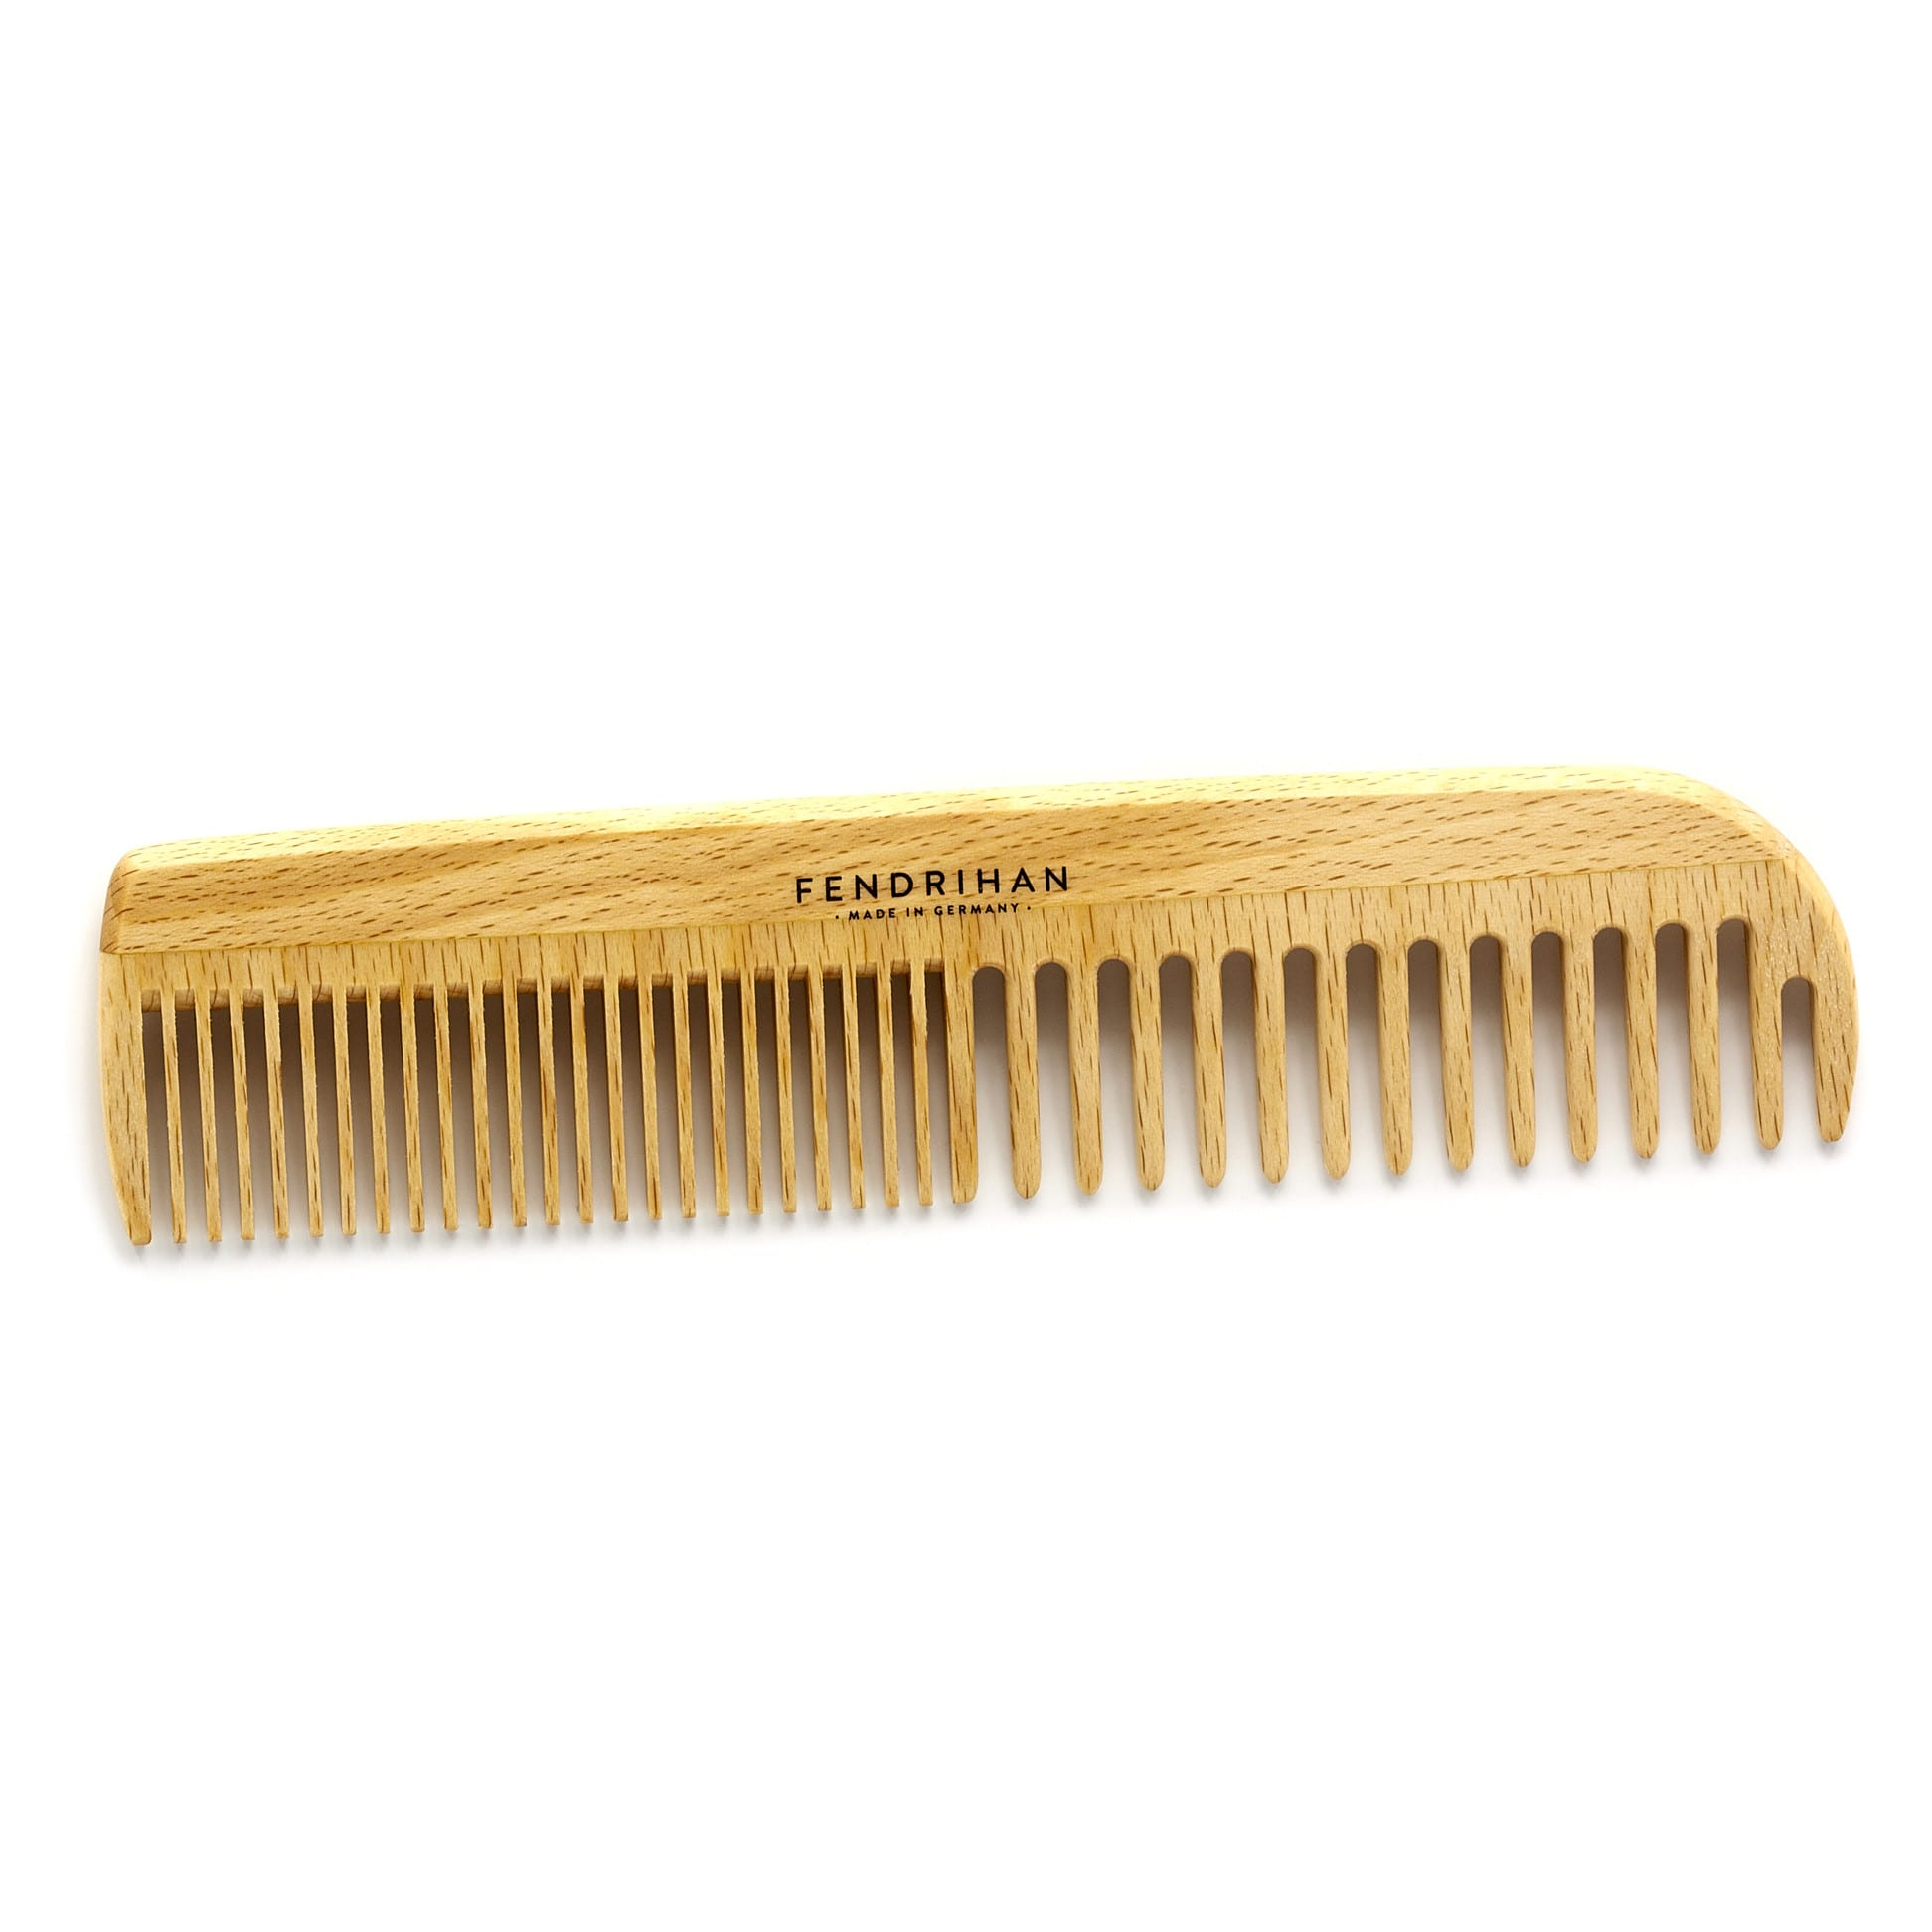 fendrihan pocket comb